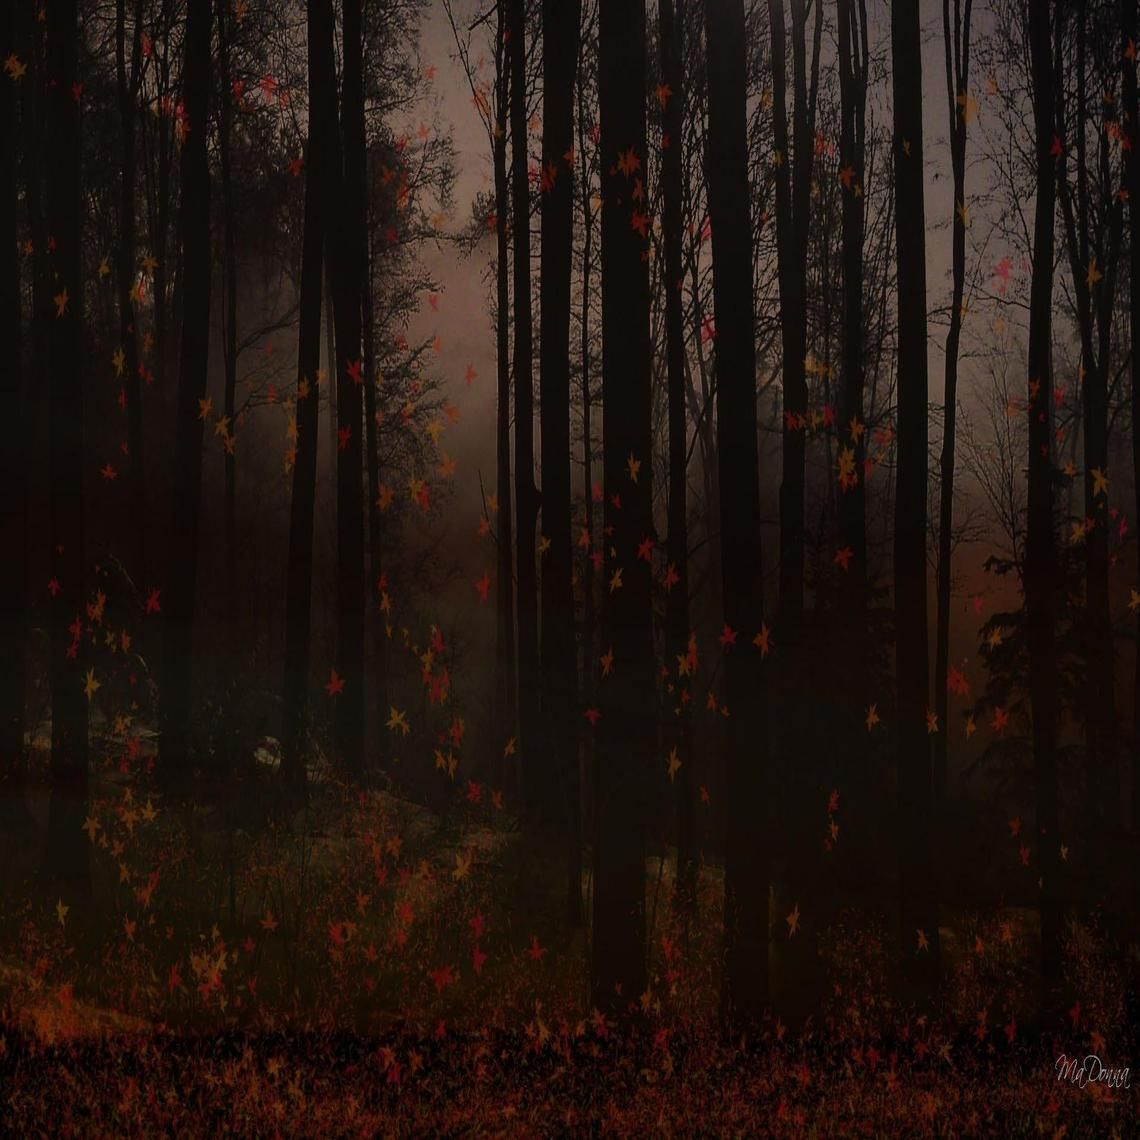 Forest At Dusk Wallpaper